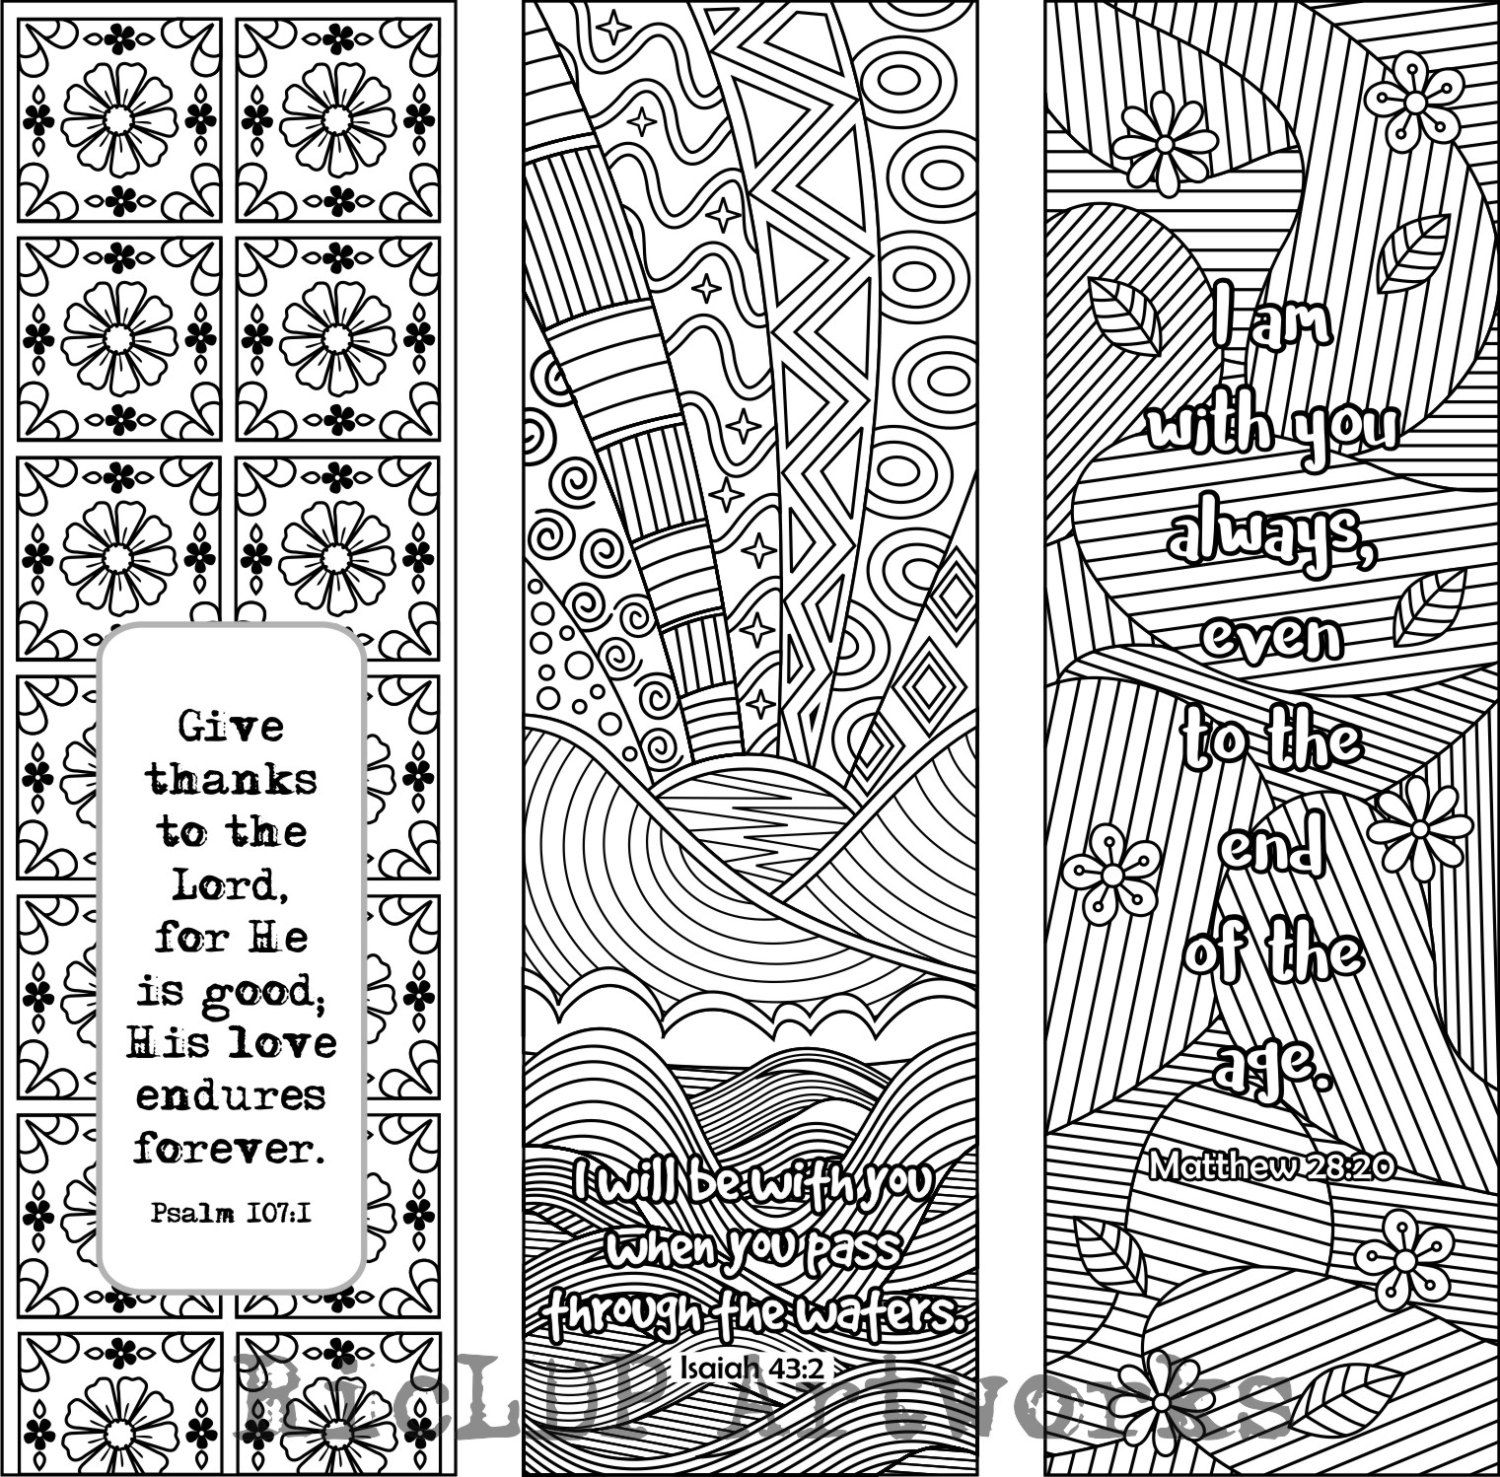 Religious bookmarks to color - Printable Bible Verse Coloring Bookmarks For Kids And Adults Details 8 Bookmark Designs In Jpegs And Pdf Formats Plus Two Complimentary Bookmark